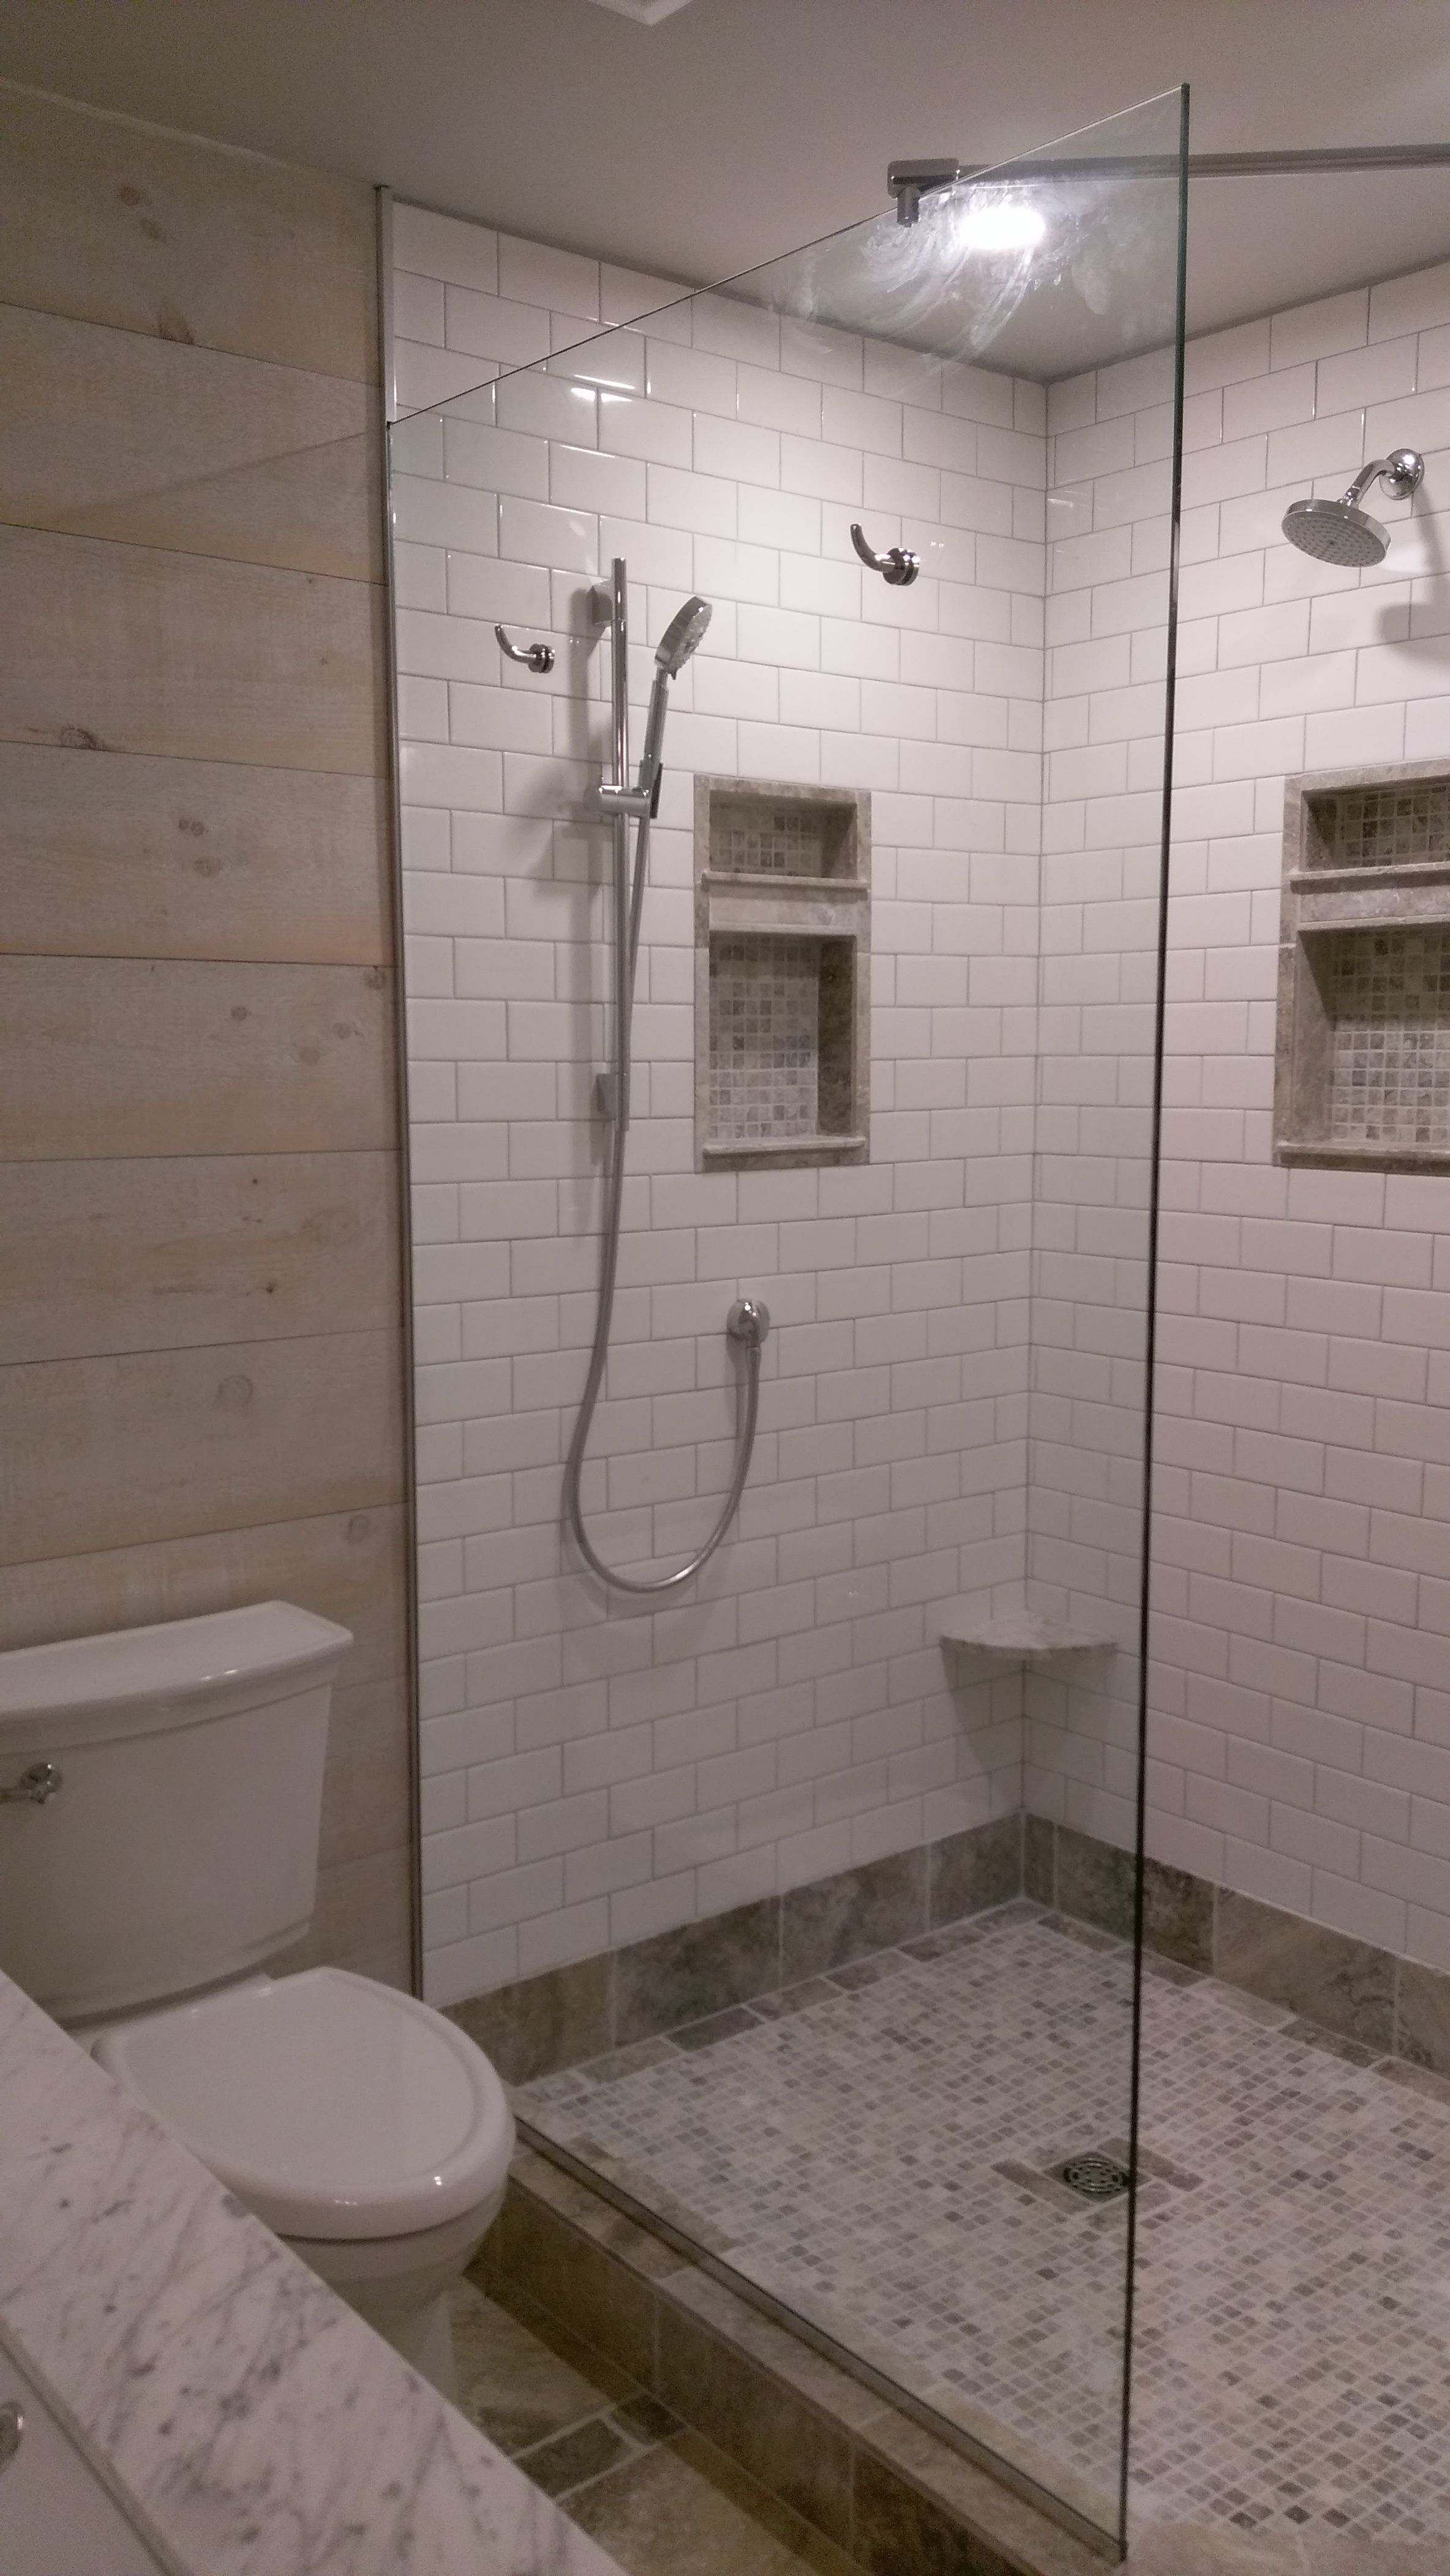 photos of remodeled bathrooms%0A Bathroom Remodel